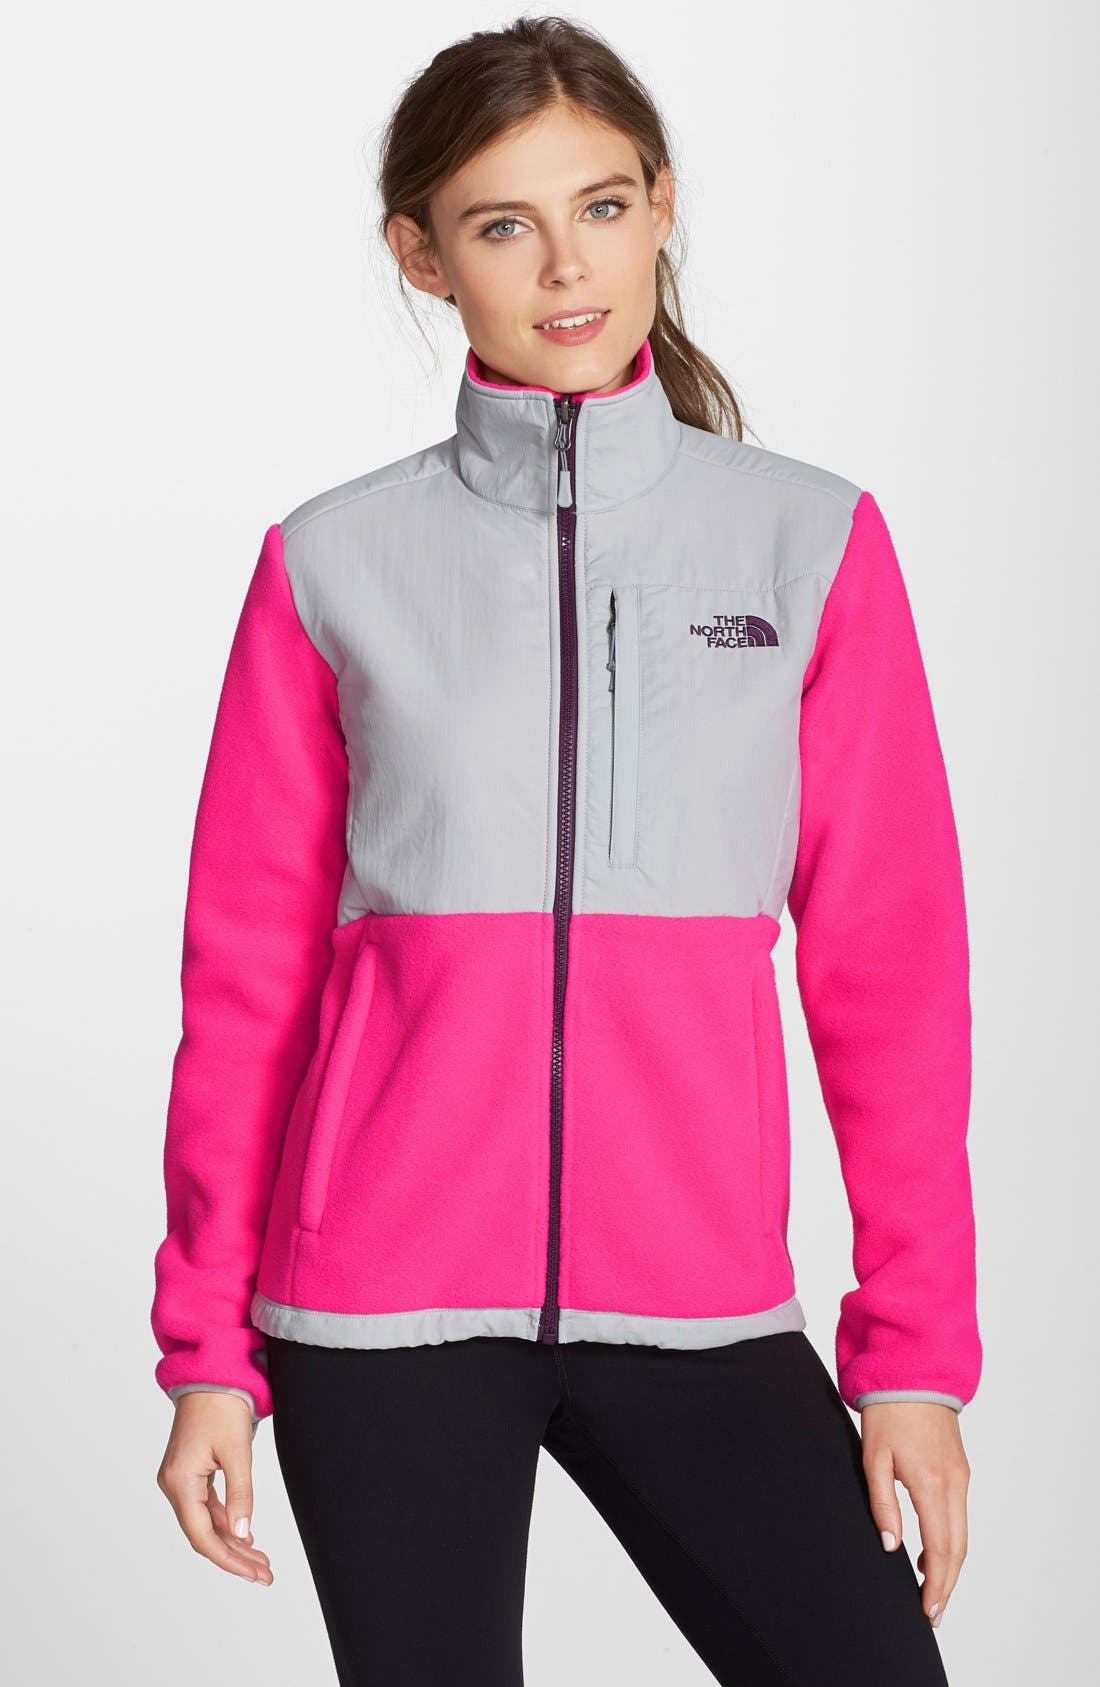 Alternate Image 1 Selected - The North Face 'Denali' Jacket